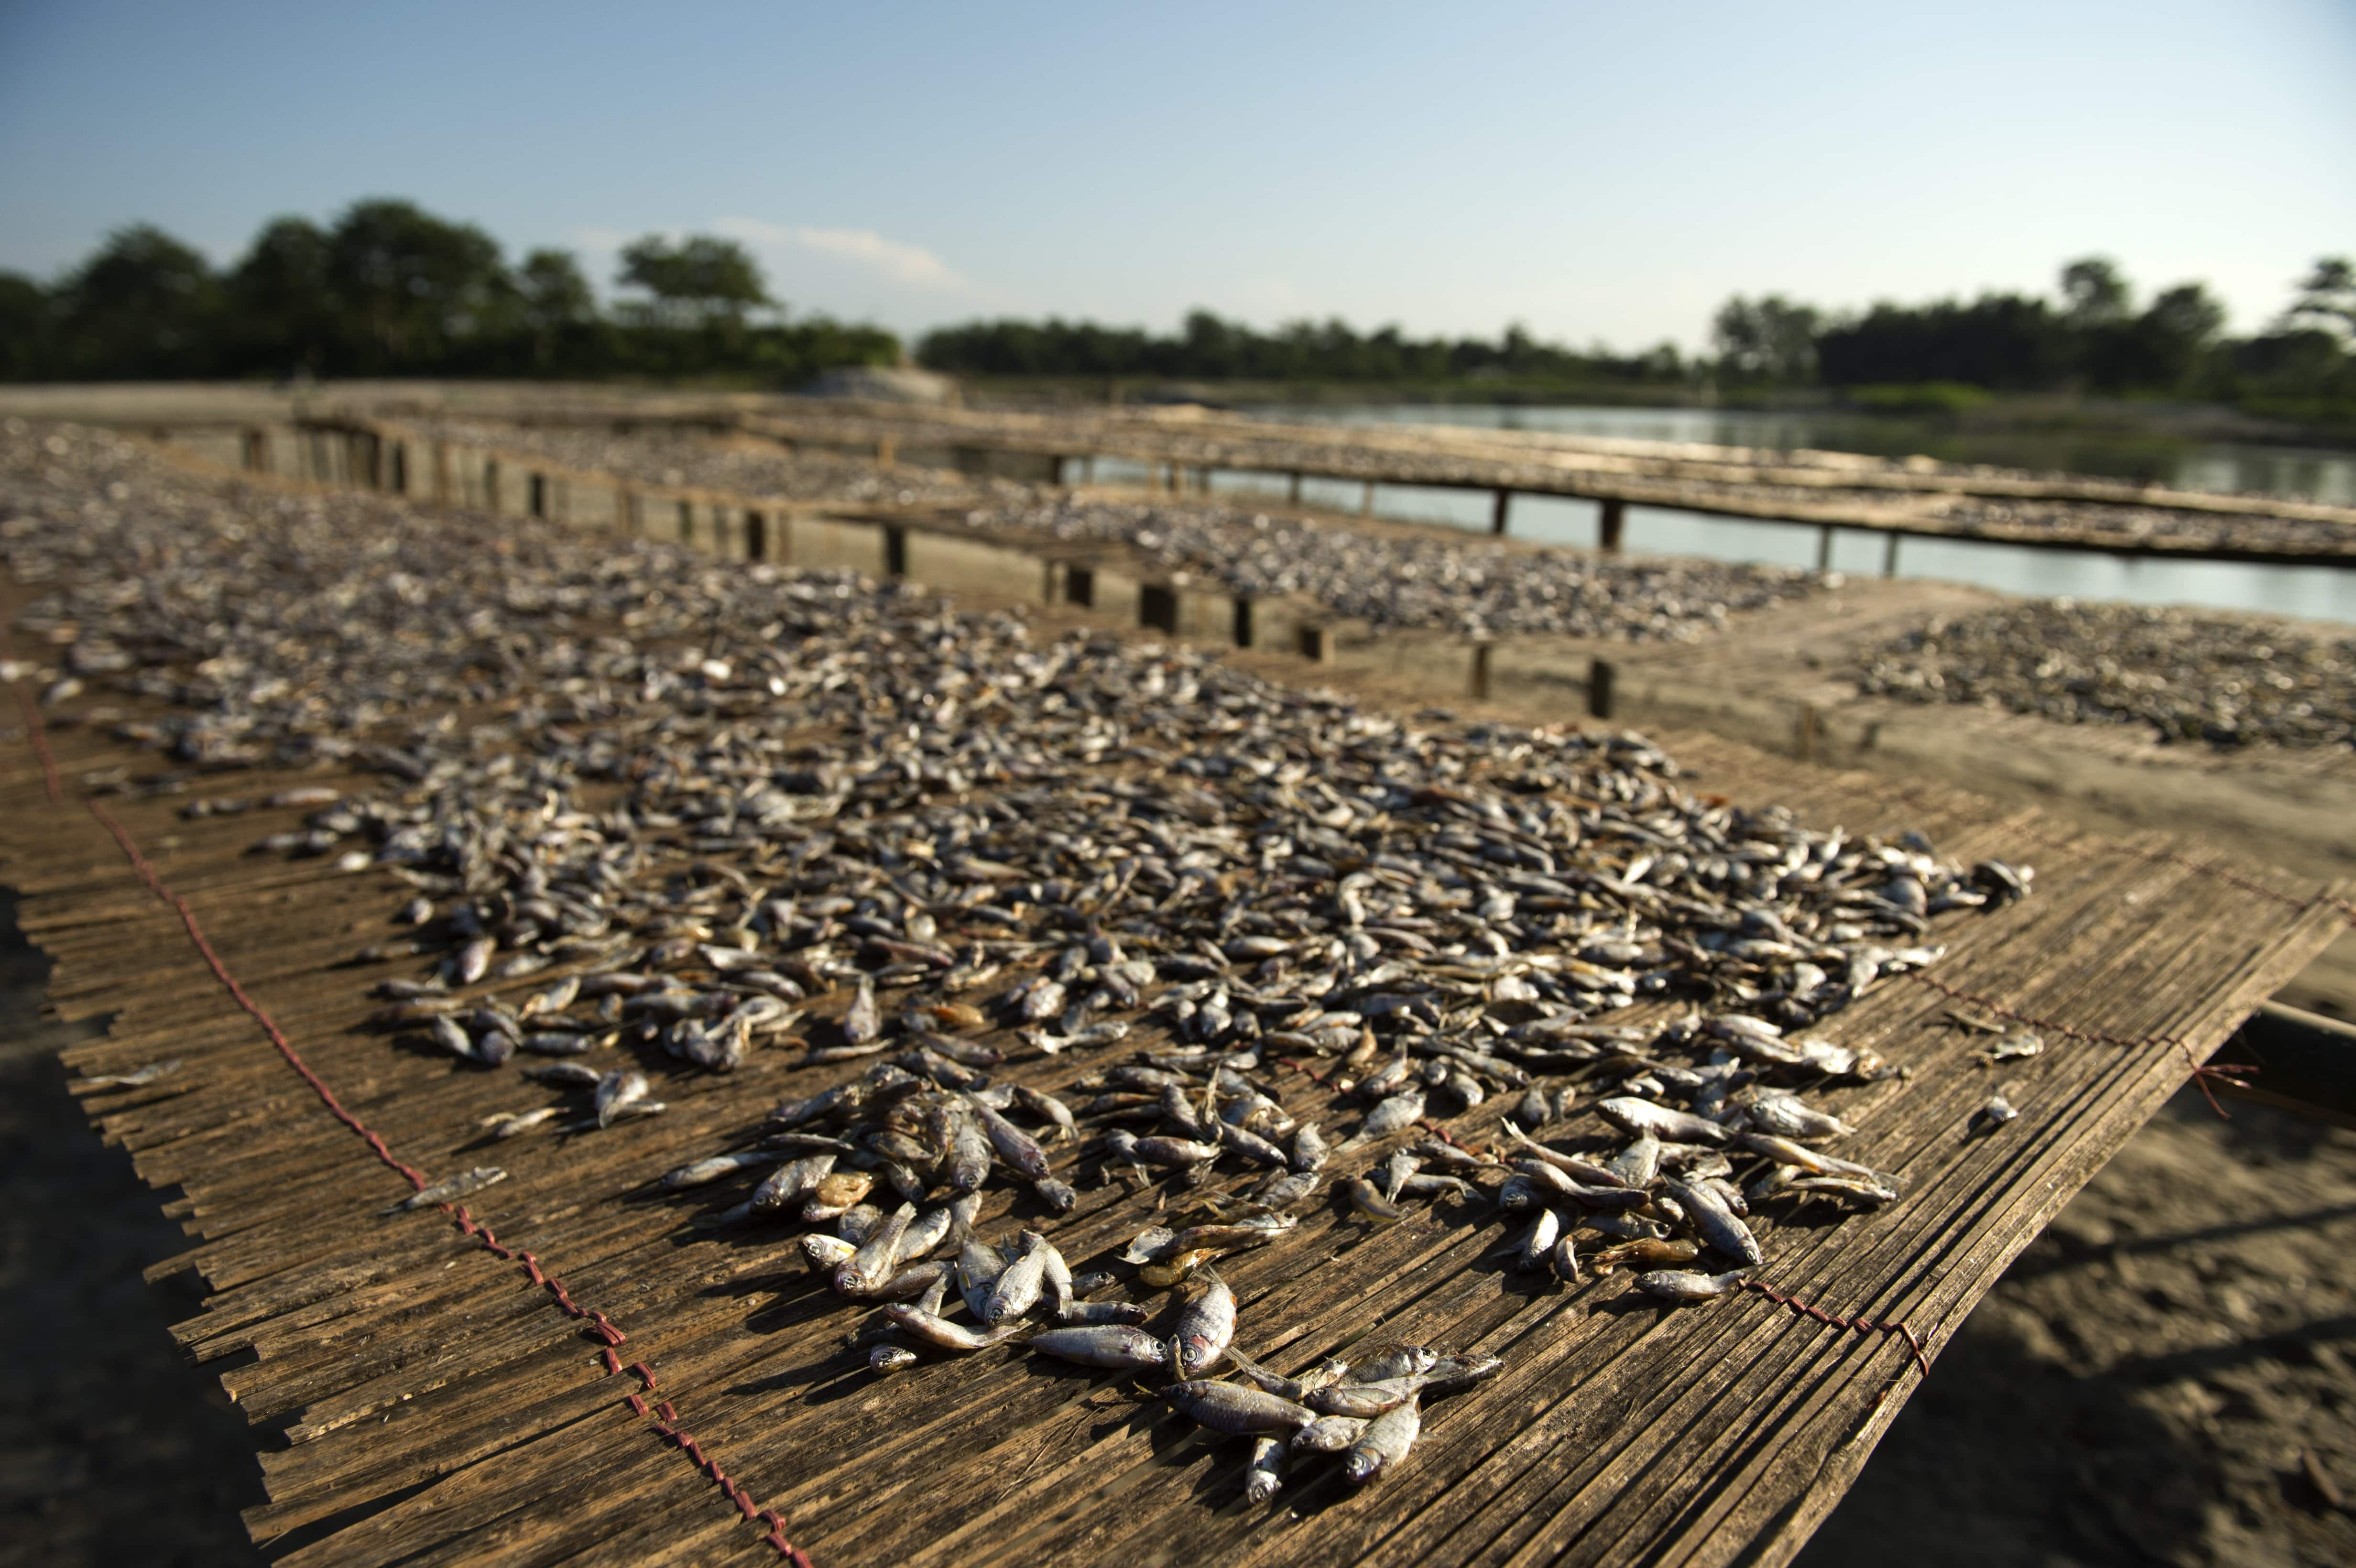 Fish caught by the Mishing community in Assam drying on mats made from bamboo. (Photograph by Arati Kumar Rao).